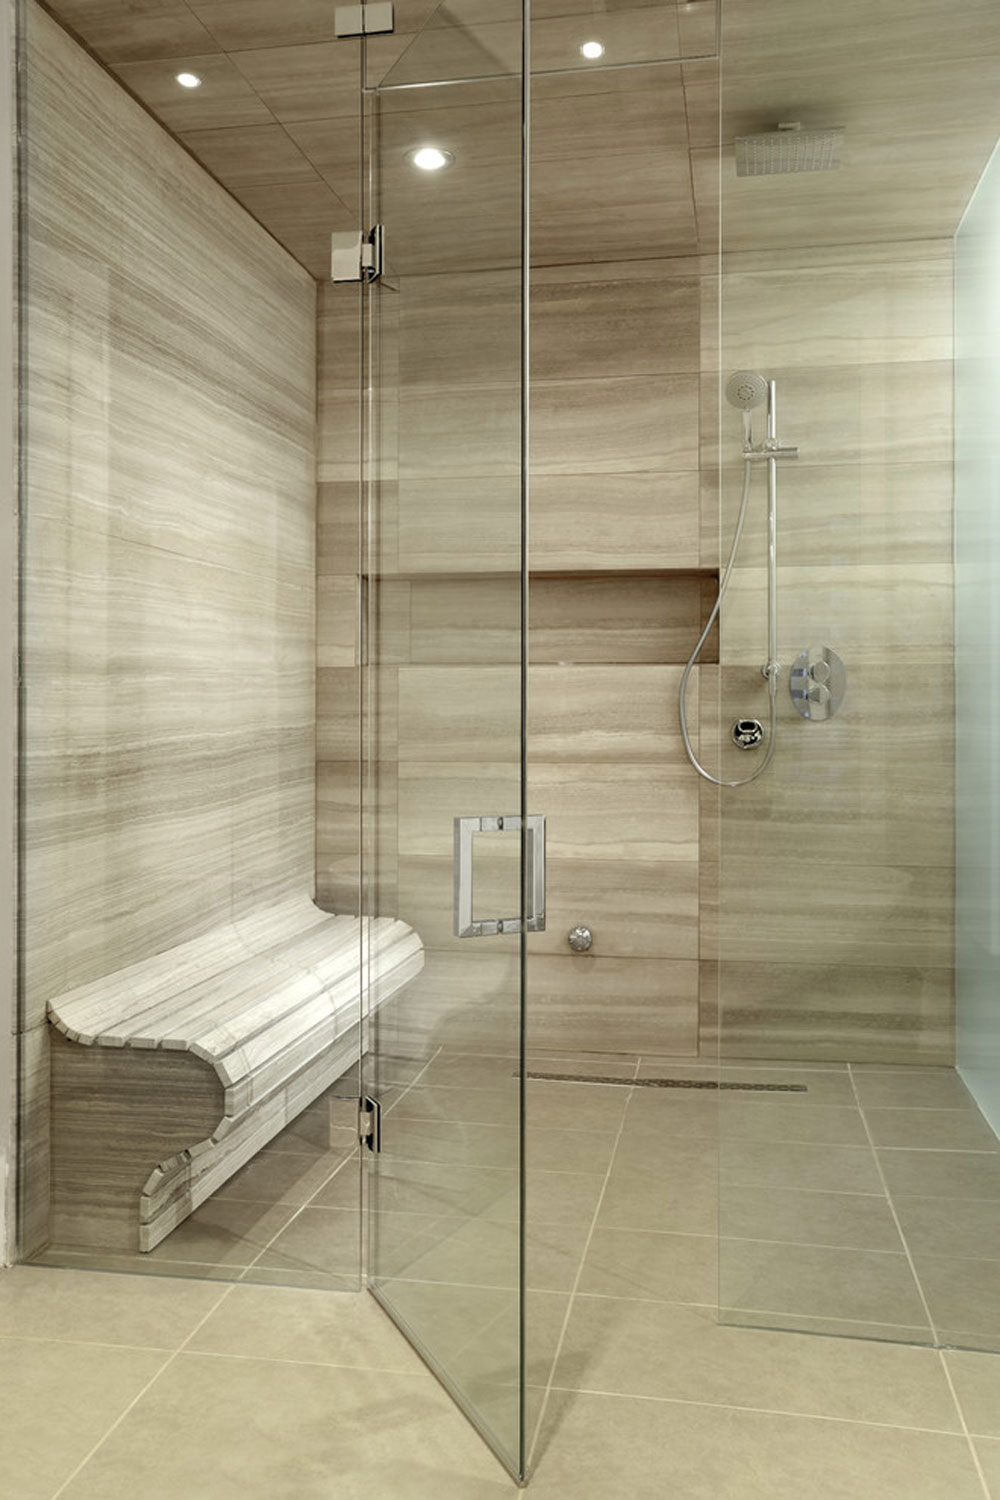 Madison-Avenue-The-Annex-Toronto-by-Sisters-in-Sync-Design shower enclosure ideas and best practices for your bathroom